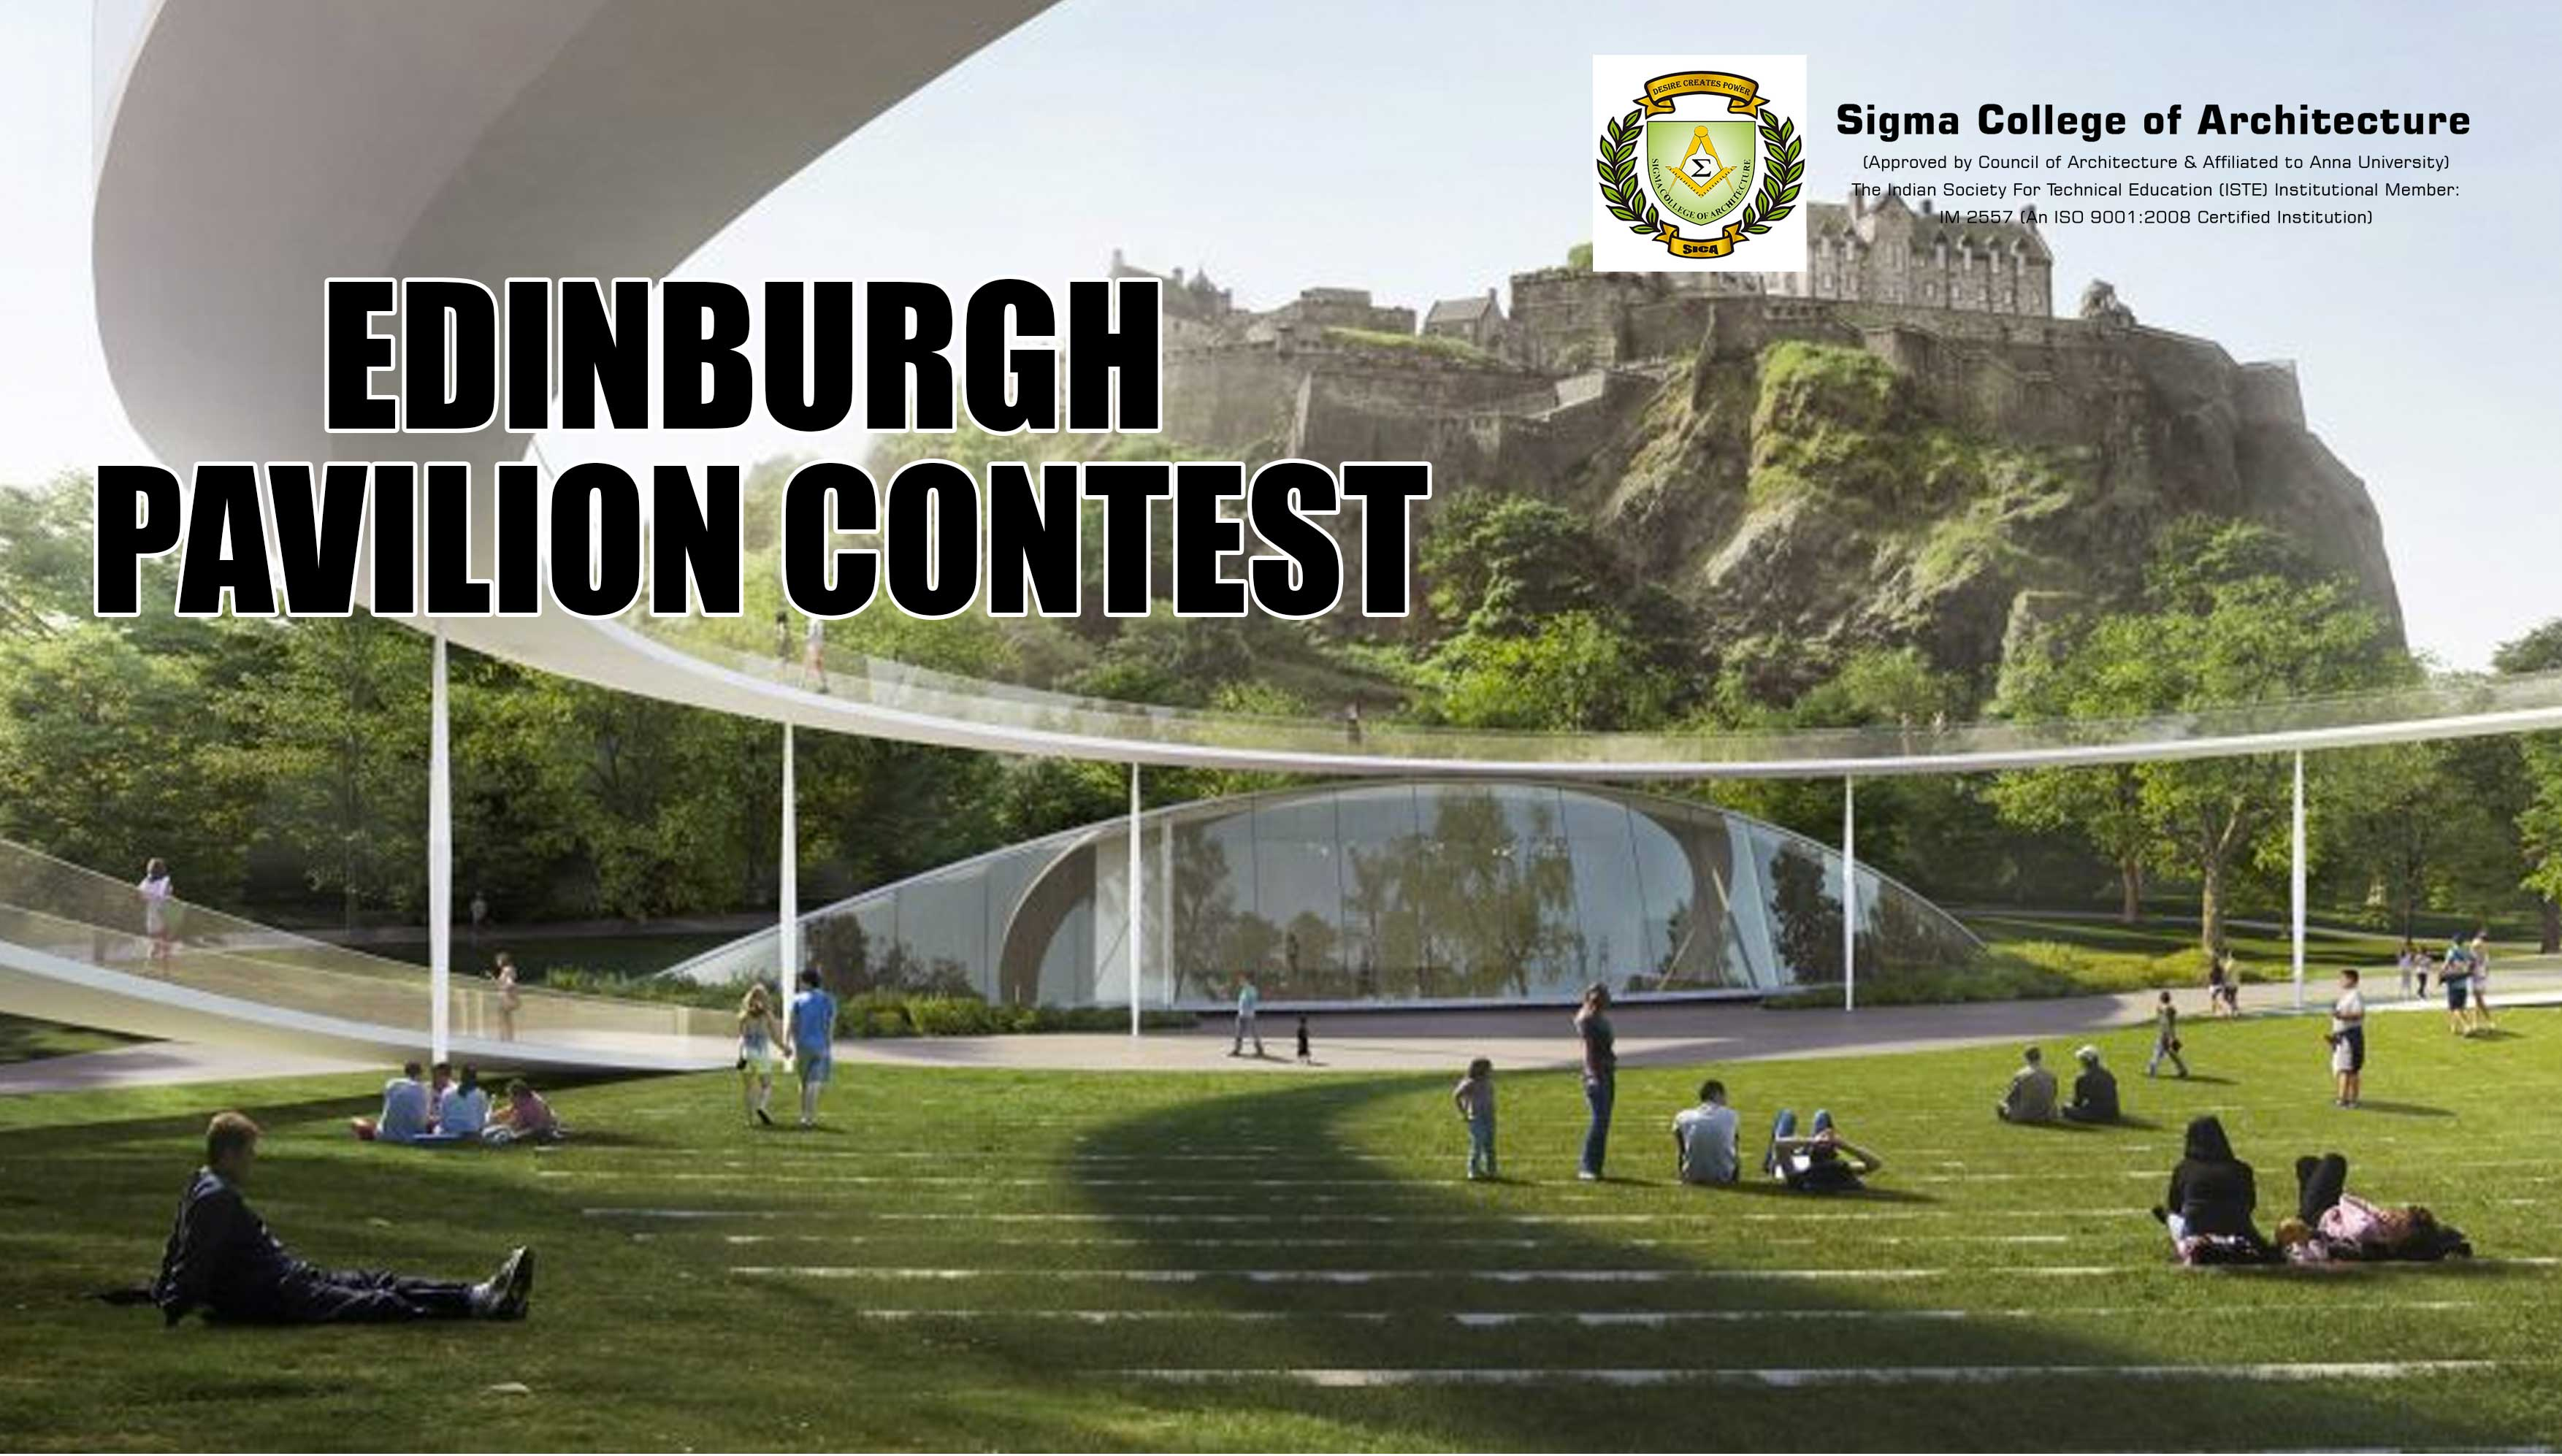 Edinburgh Pavilion Contest